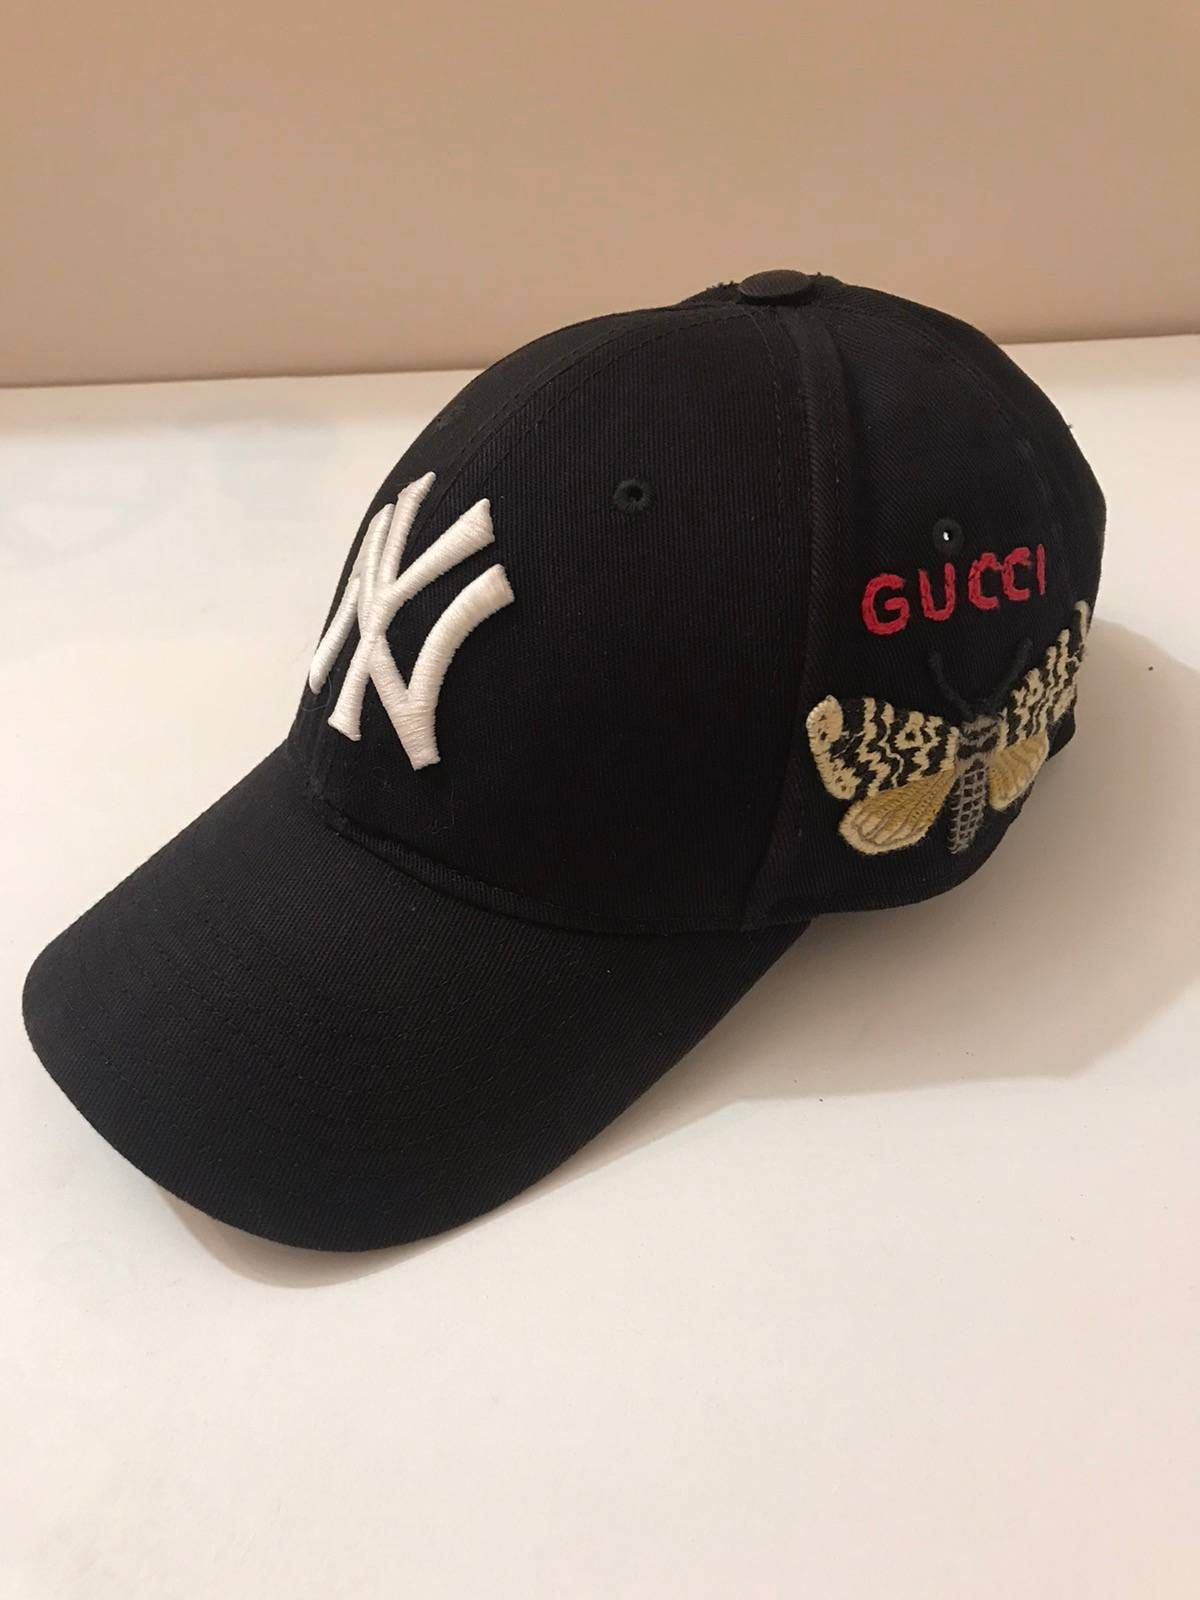 Searching For Gucci New York Yankees Collab We Ve Got Gucci Accessories Starting At 360 And Plenty Of Other Accessories Gucci New York New York Yankees Gucci